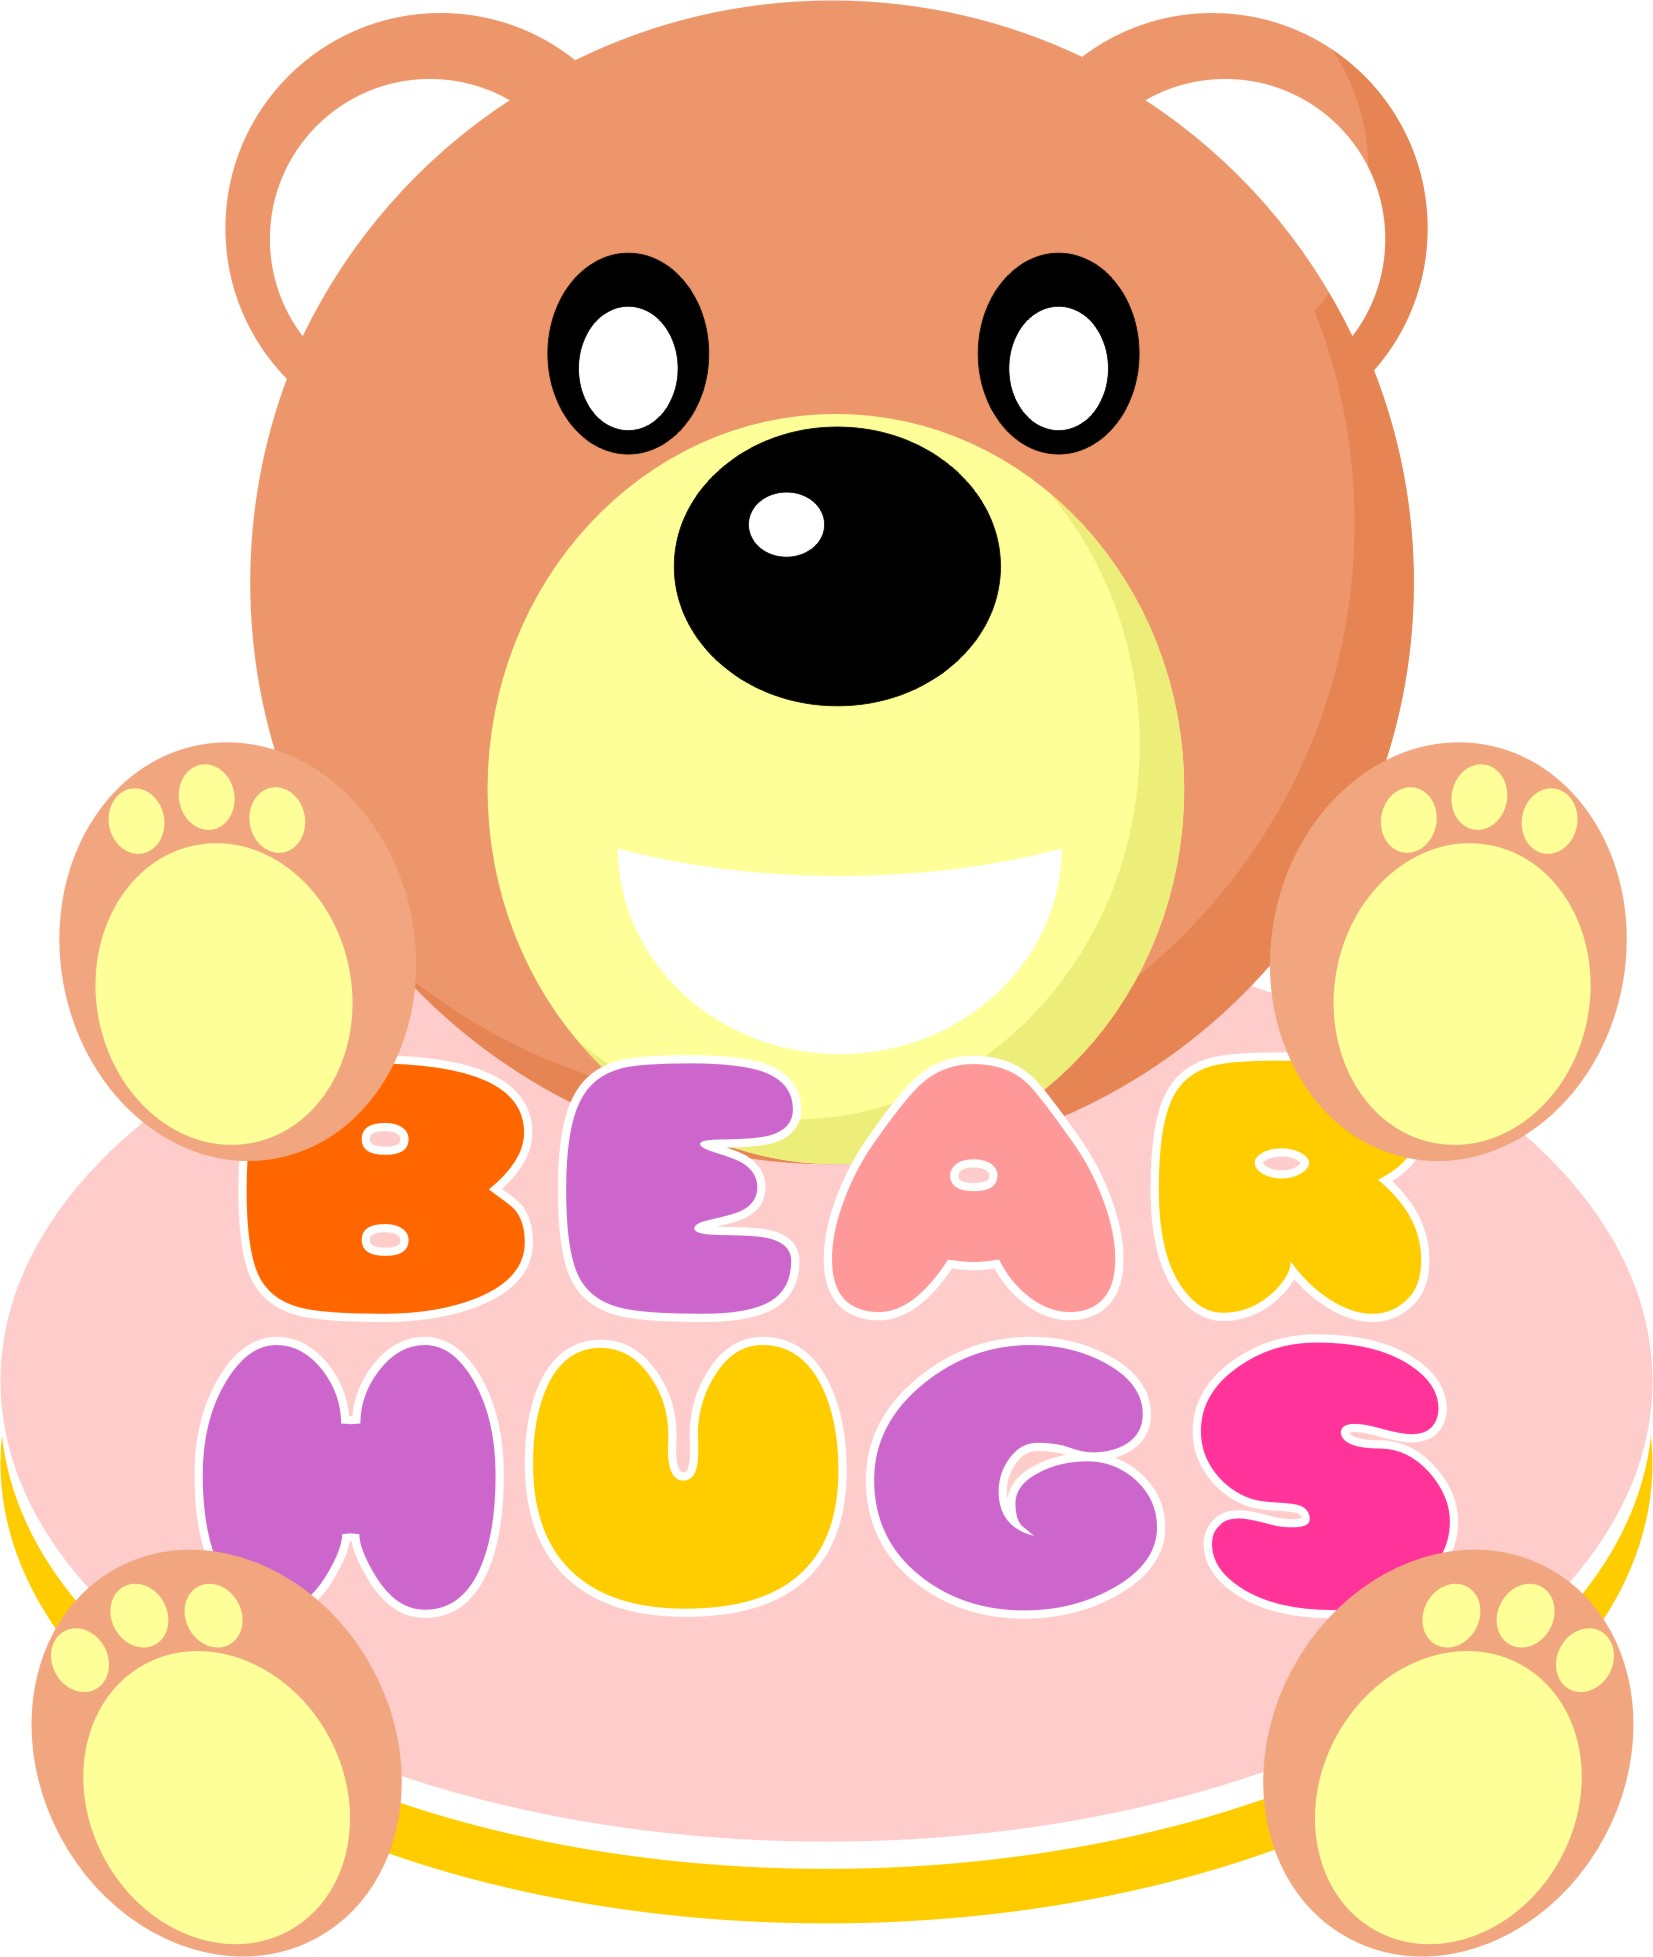 Logo Design by Achmad Ismail - Entry No. 46 in the Logo Design Contest Inspiring Logo Design for BearHugs.